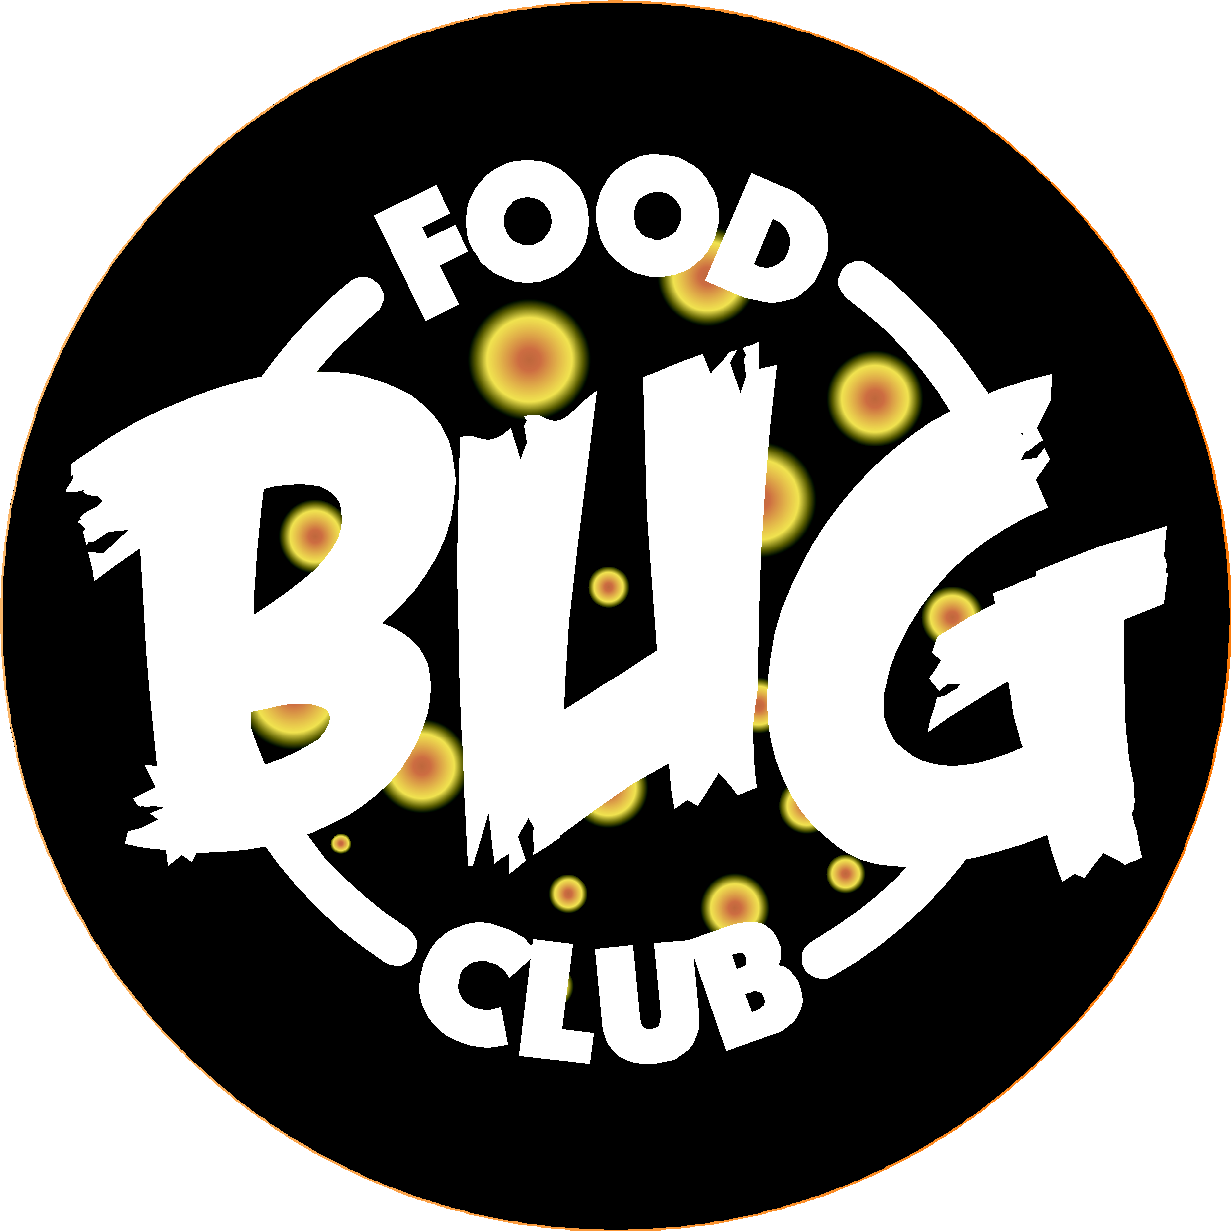 Food Bug Club logo